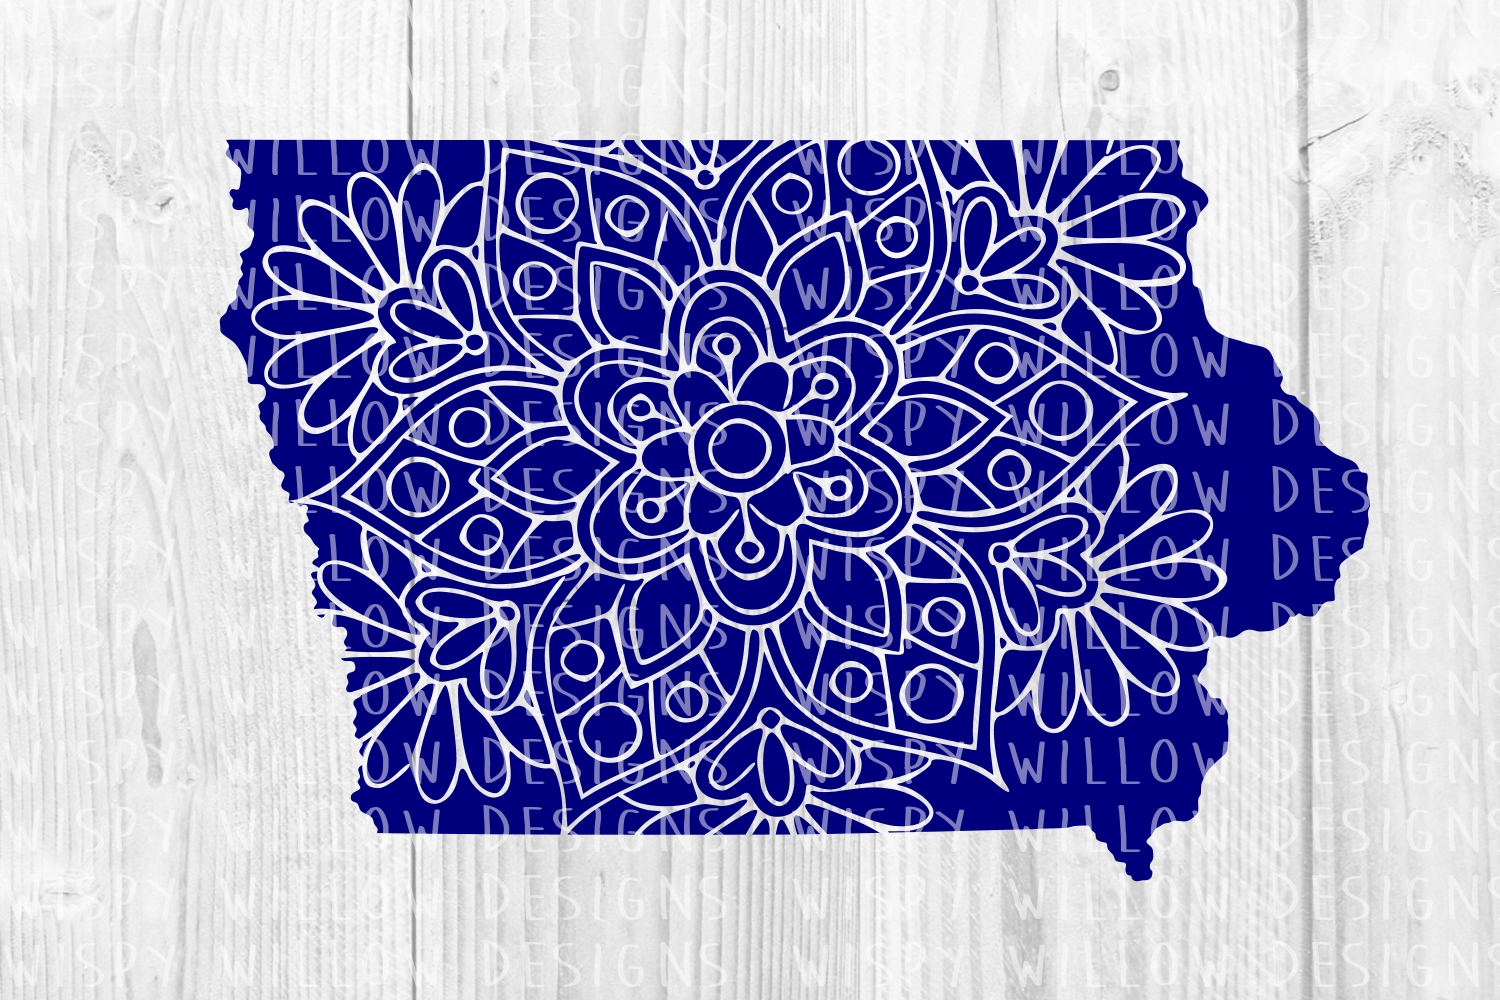 Iowa Ia Floral Mandala State Cut File Graphic By